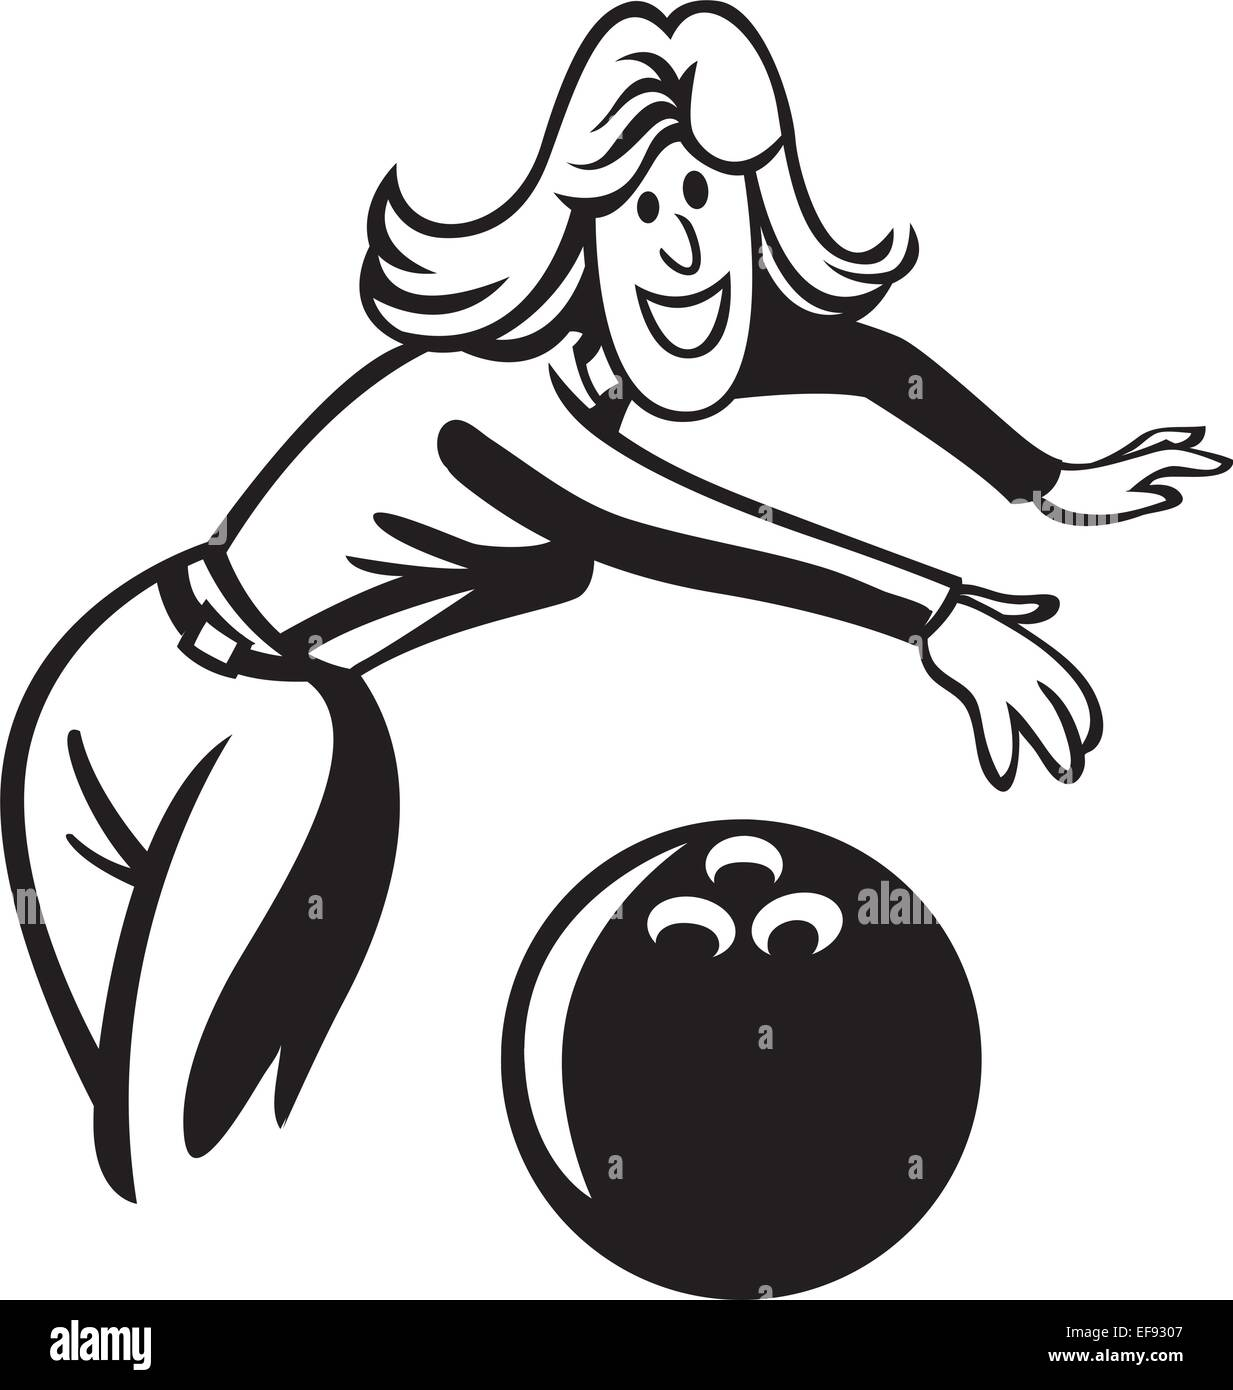 A woman bowling - Stock Vector